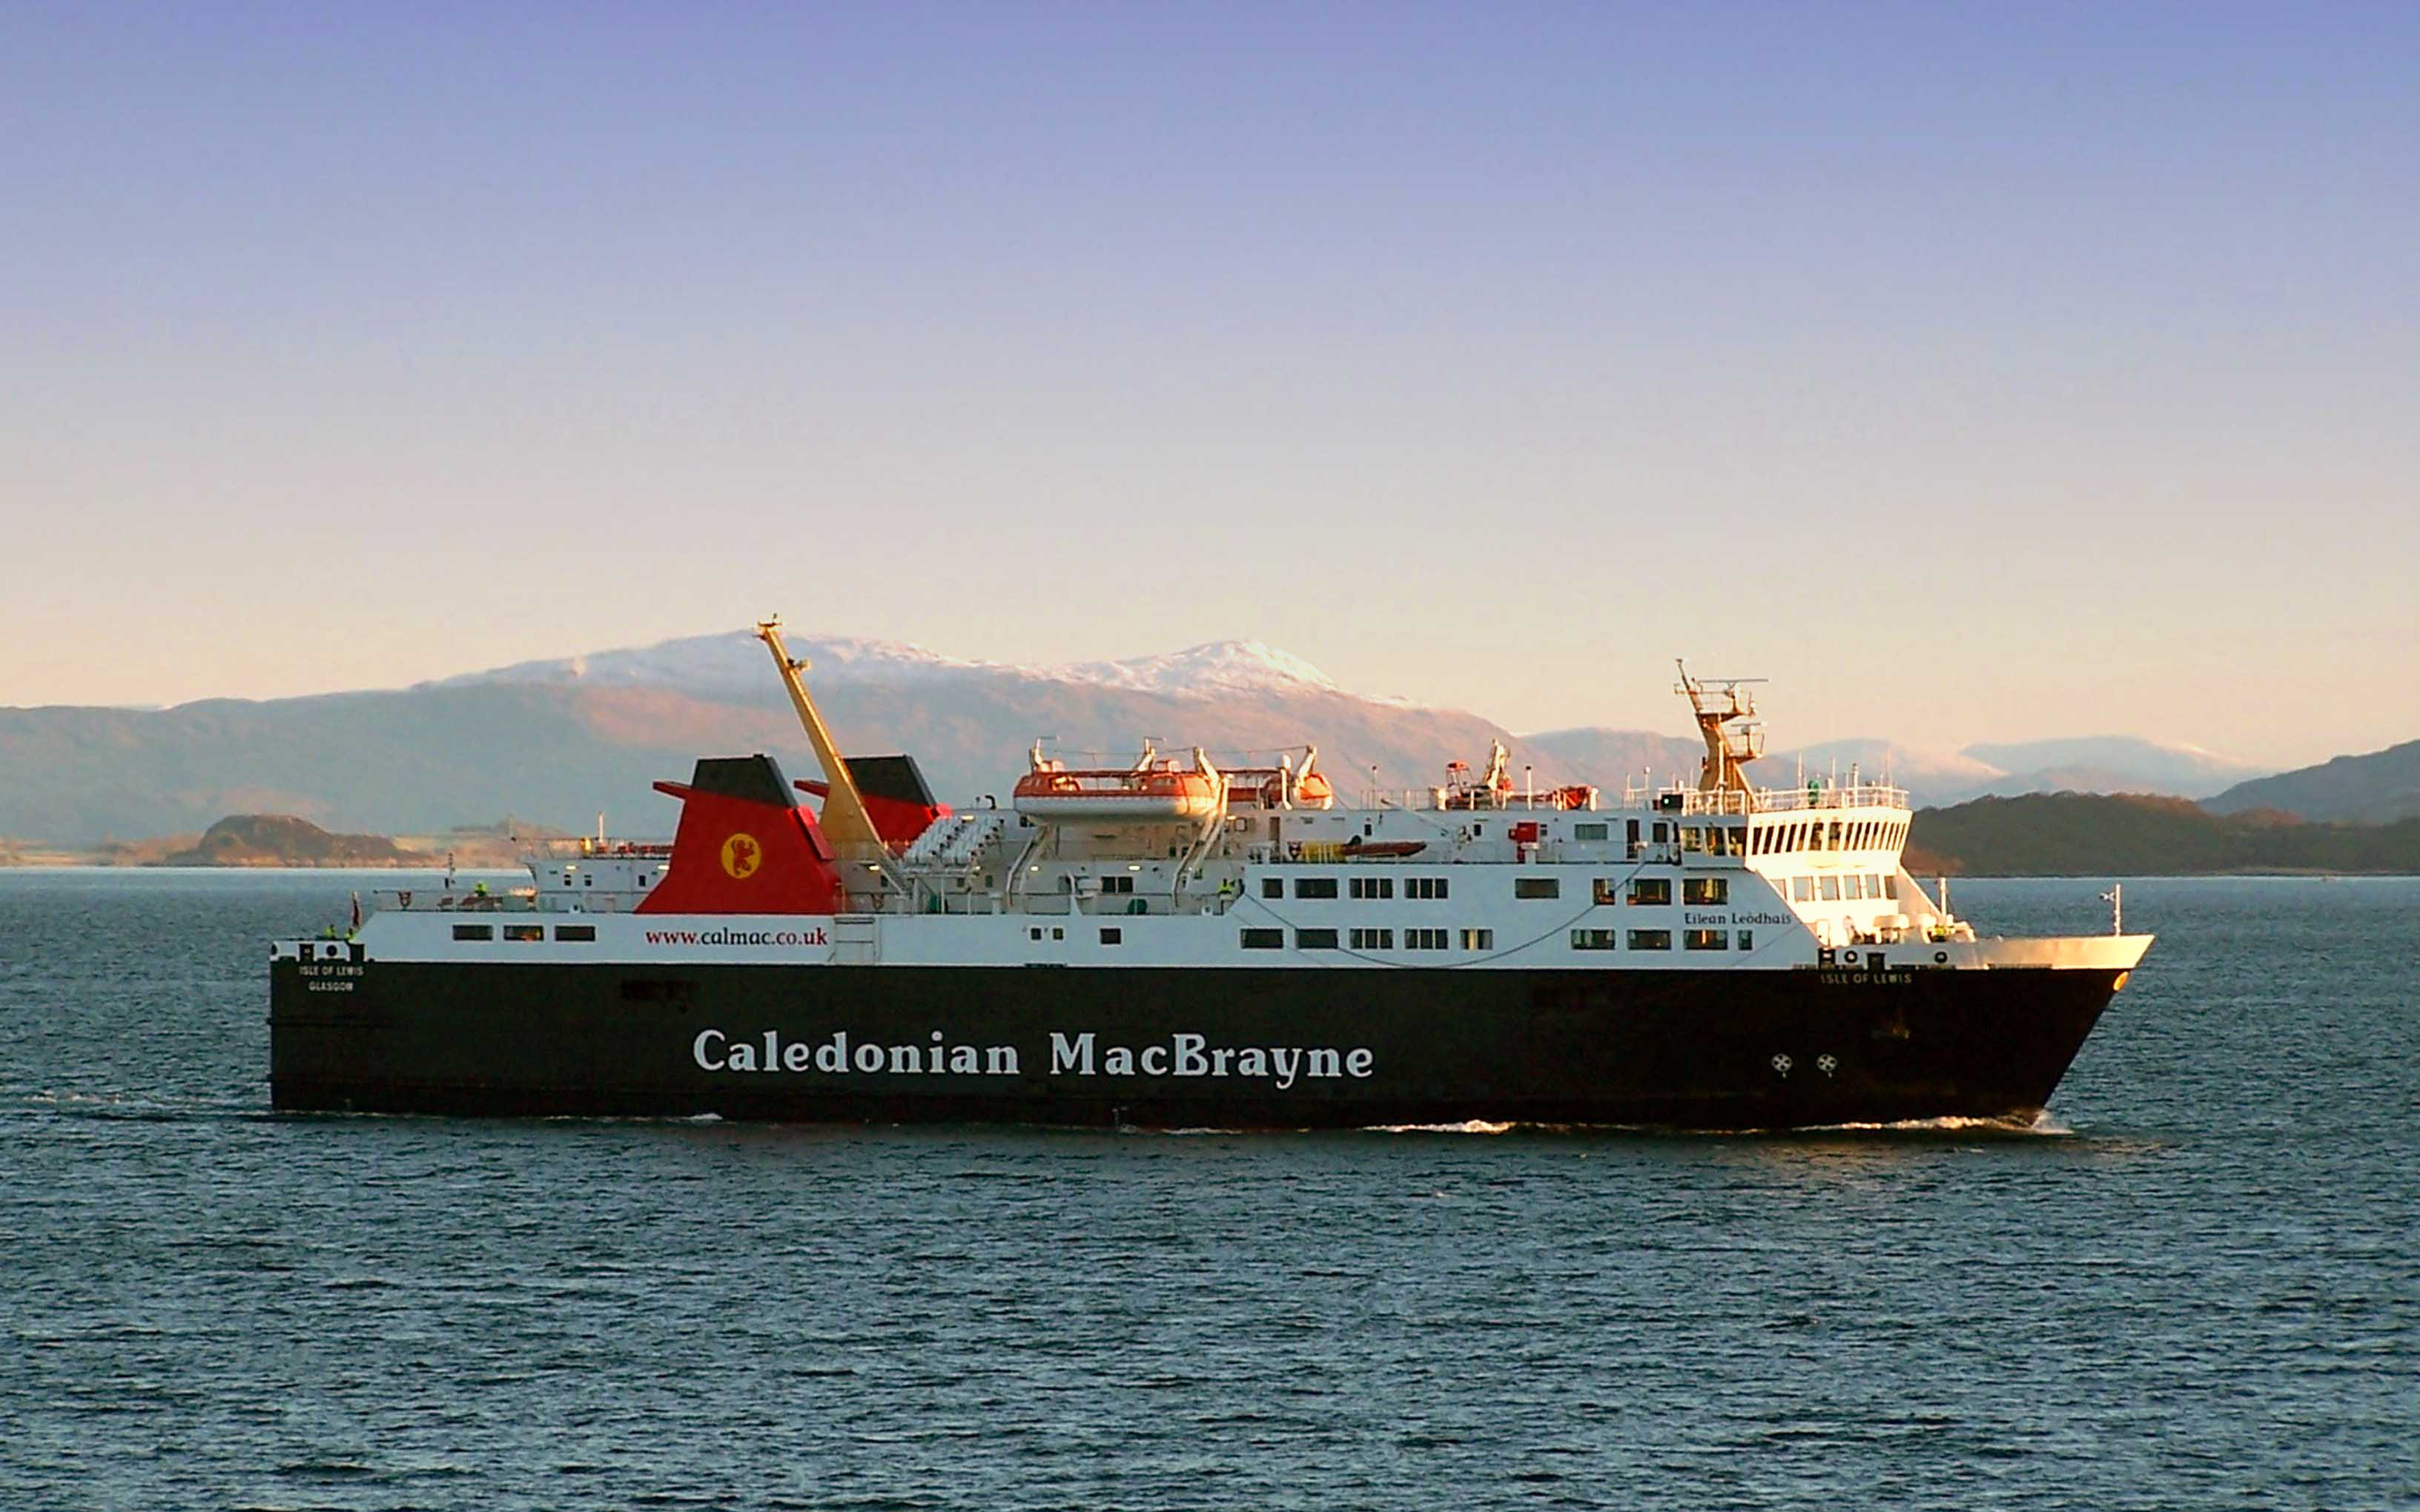 Isle of Lewis about to make her first ever call at Oban, February 2006 (Ships of CalMac)